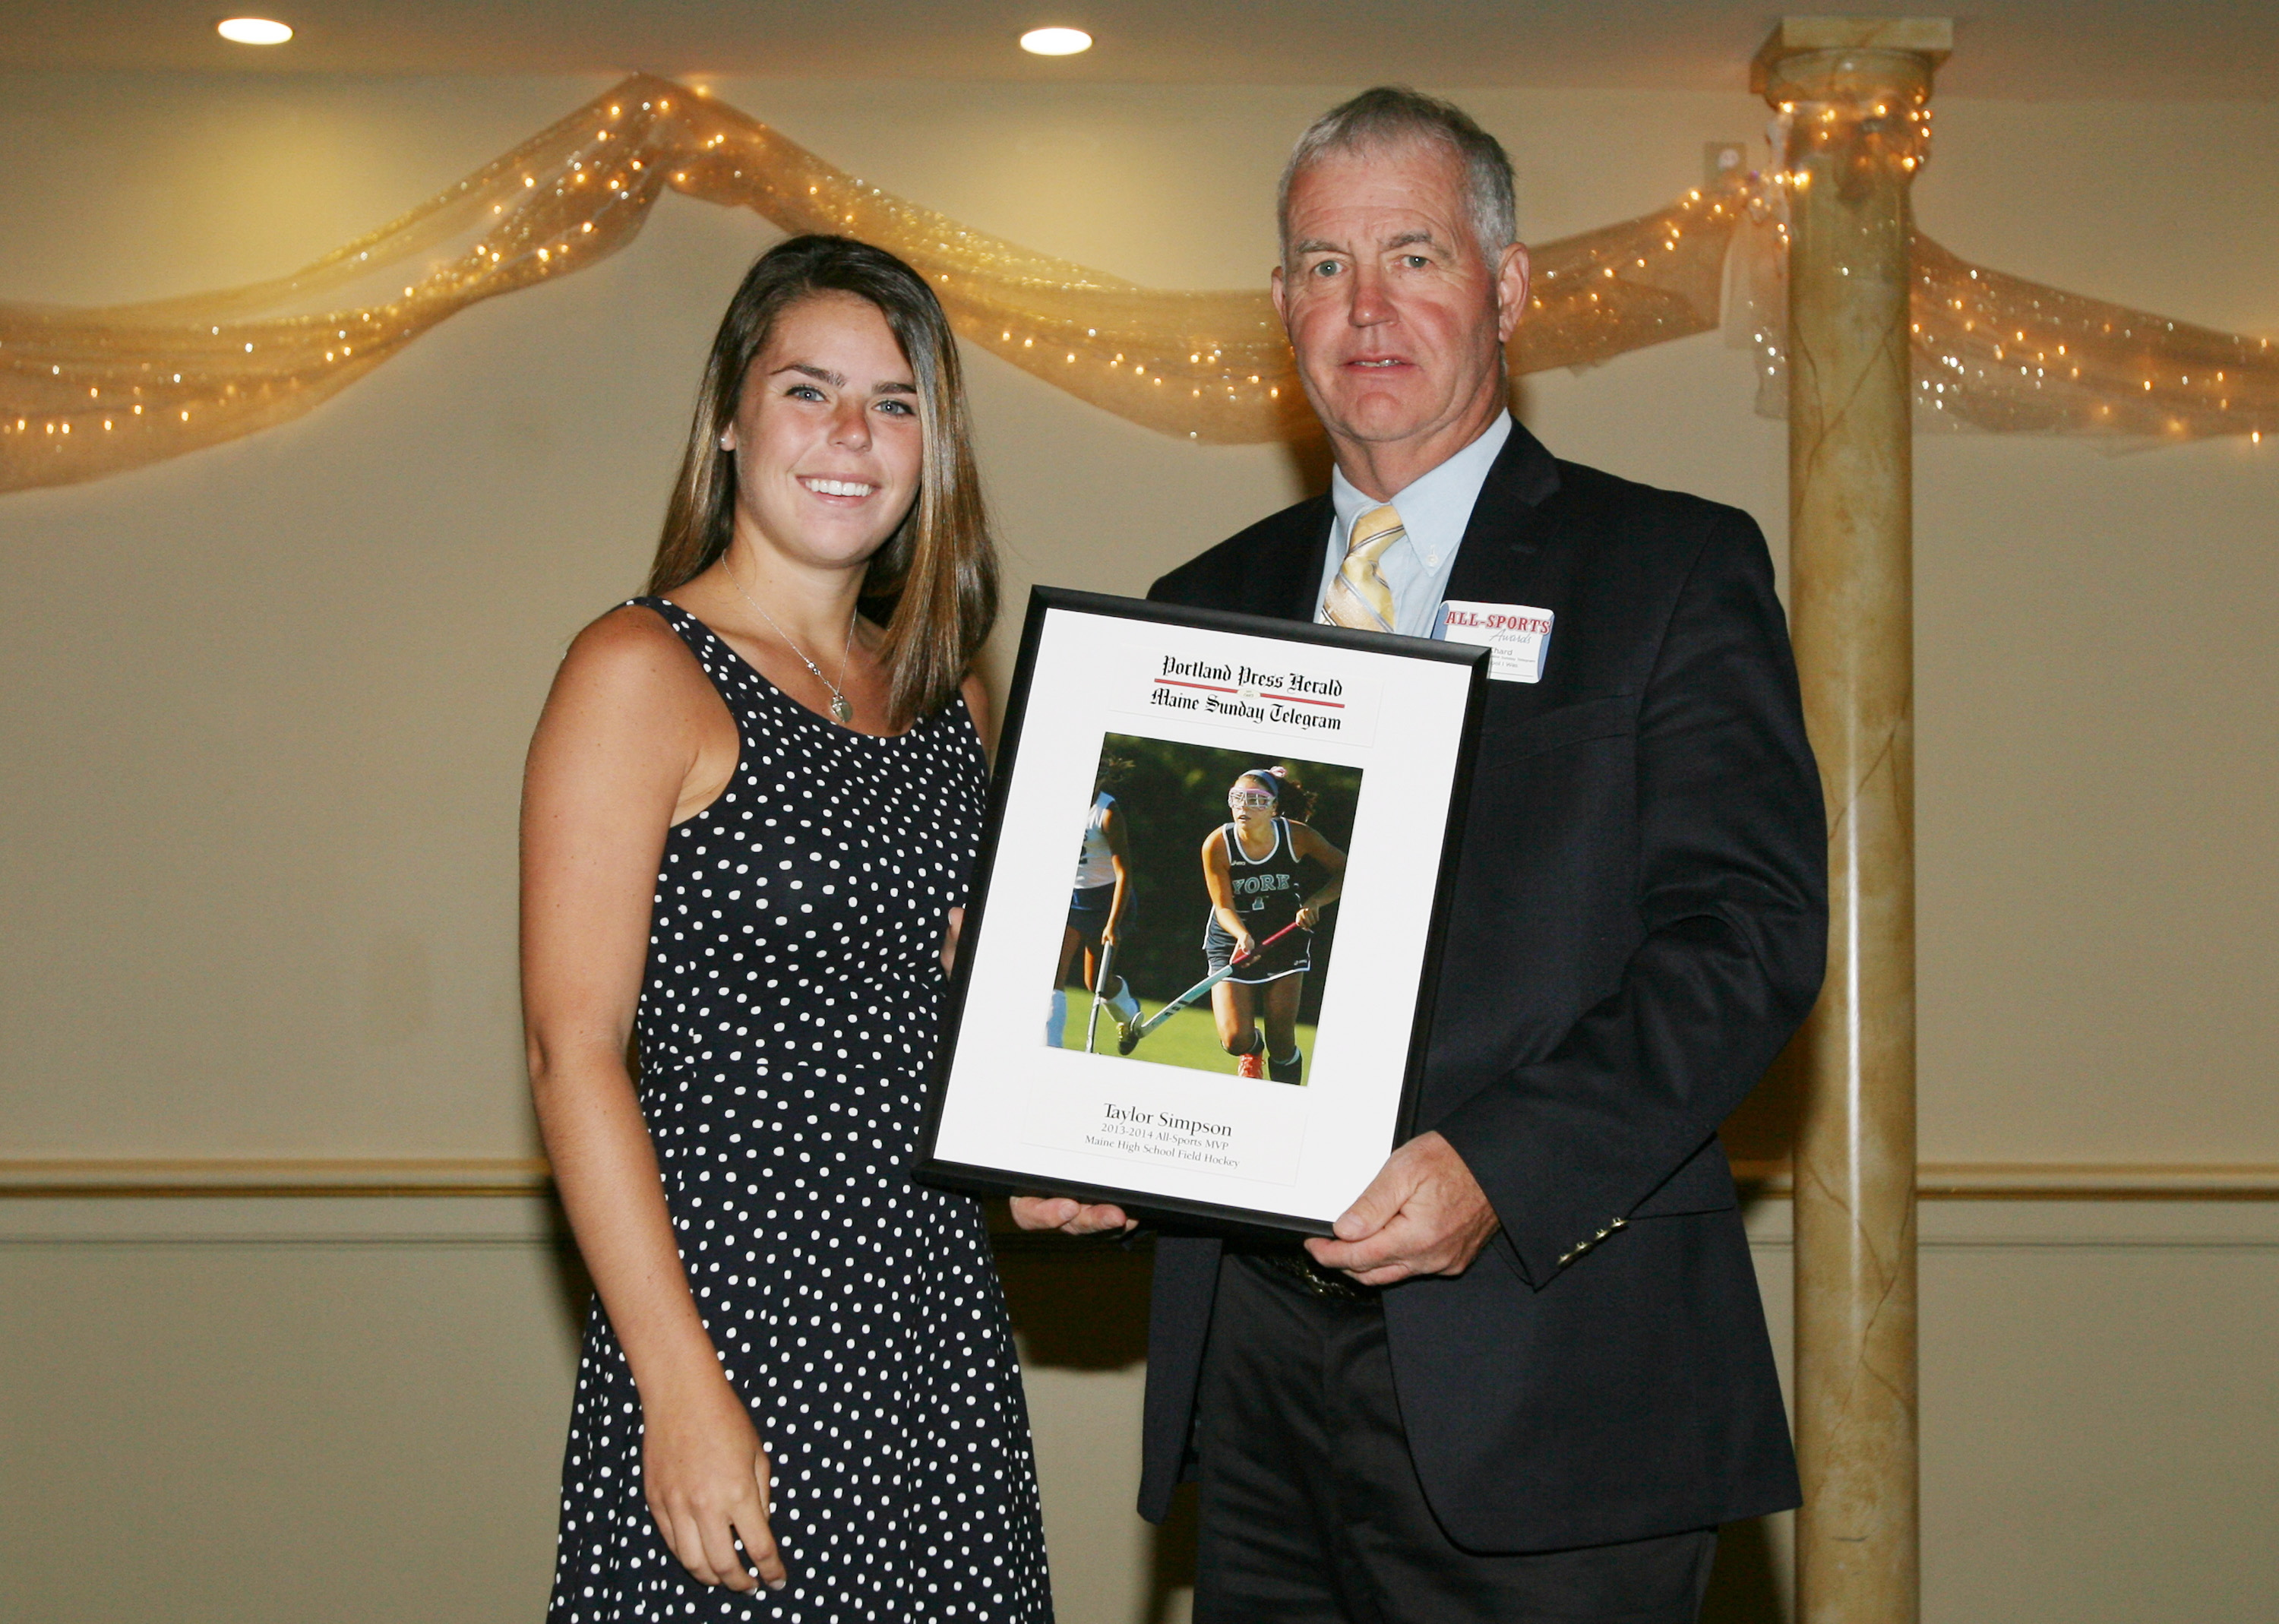 Taylor Simpson of York High School receives an award for field hockey from Press Herald sports writer Tom Chard during the 27th Annual All-Sports Awards Sunday. Joel Page/Staff Photographer